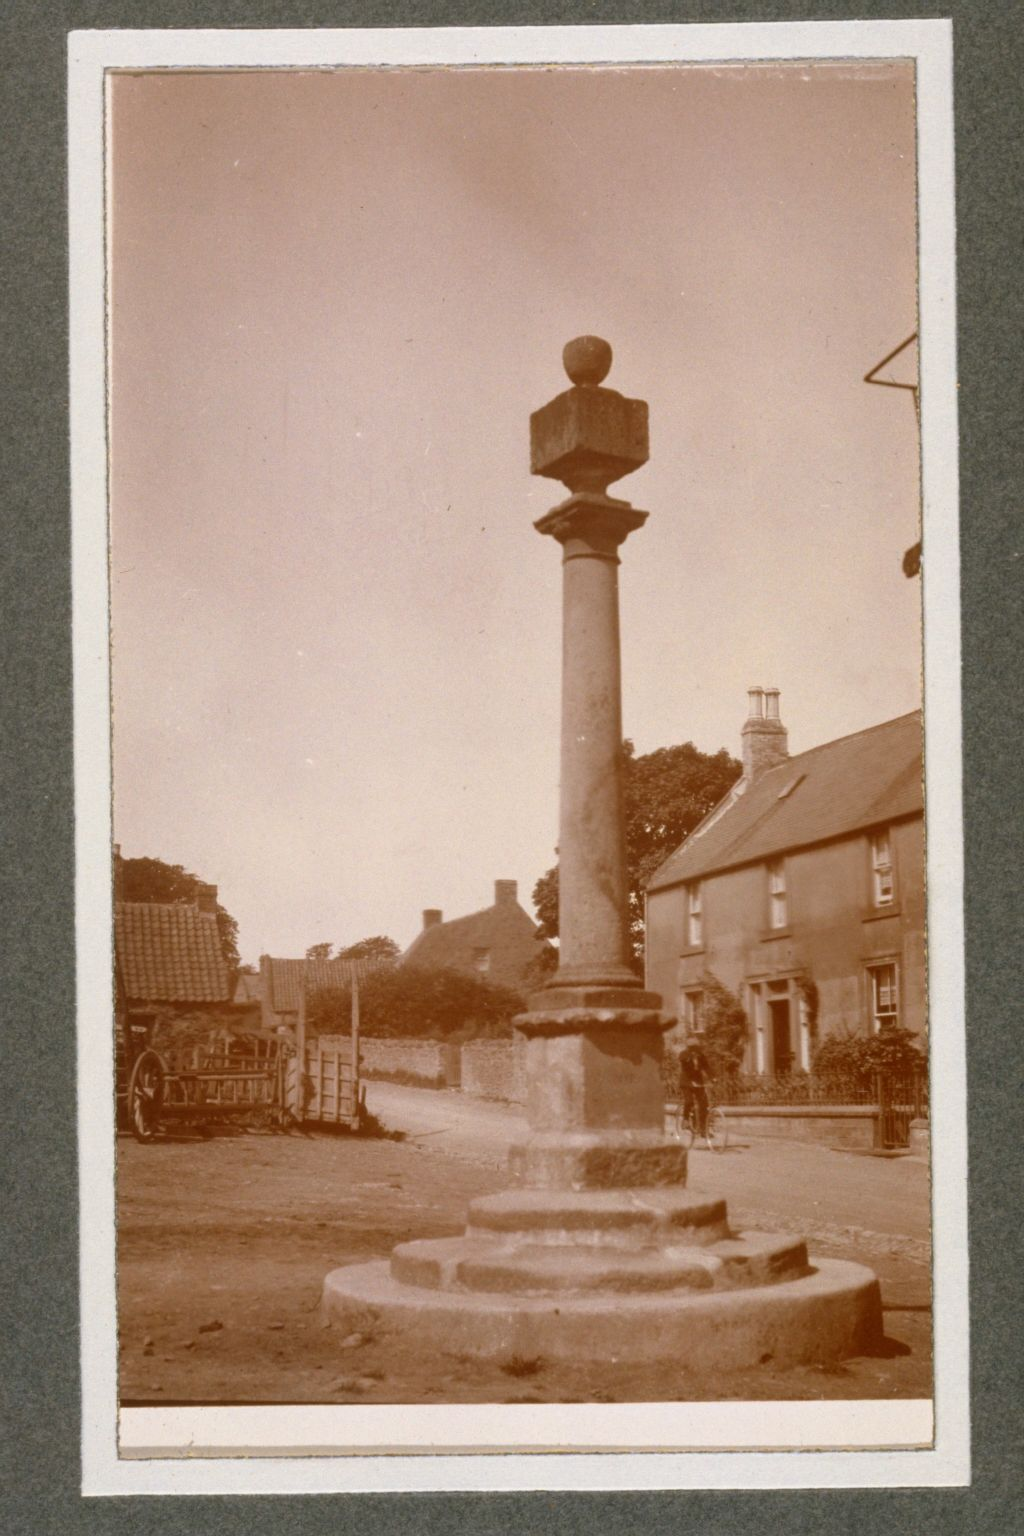 Coldingham Mercat Cross.